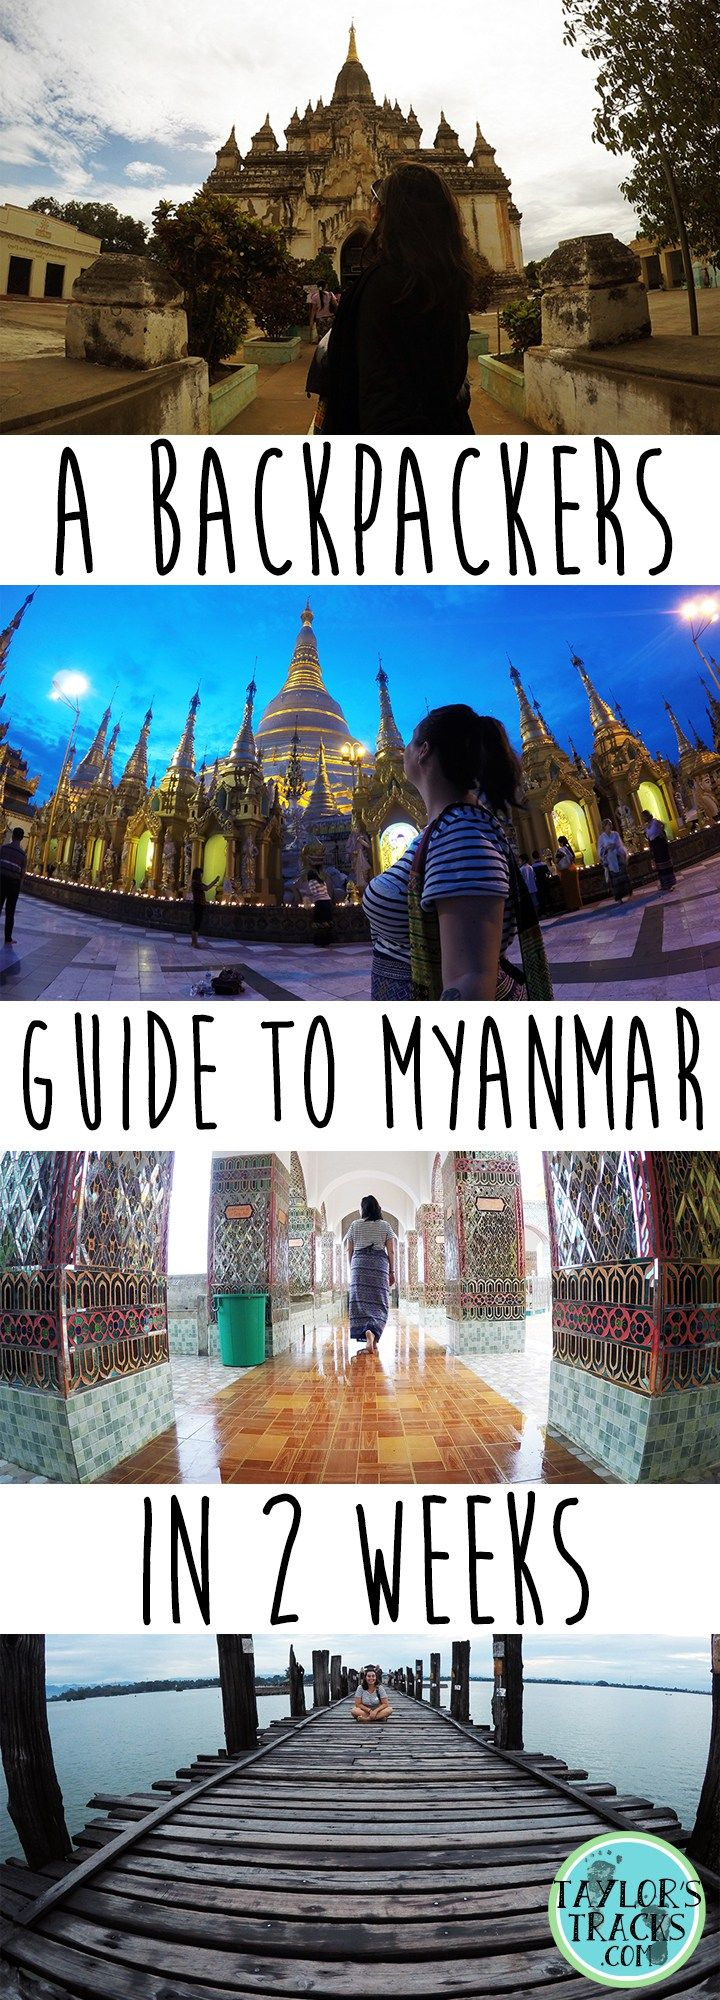 A Backpackers Guide to Myanmar in 2 Weeks Pin www.taylorstracks.com